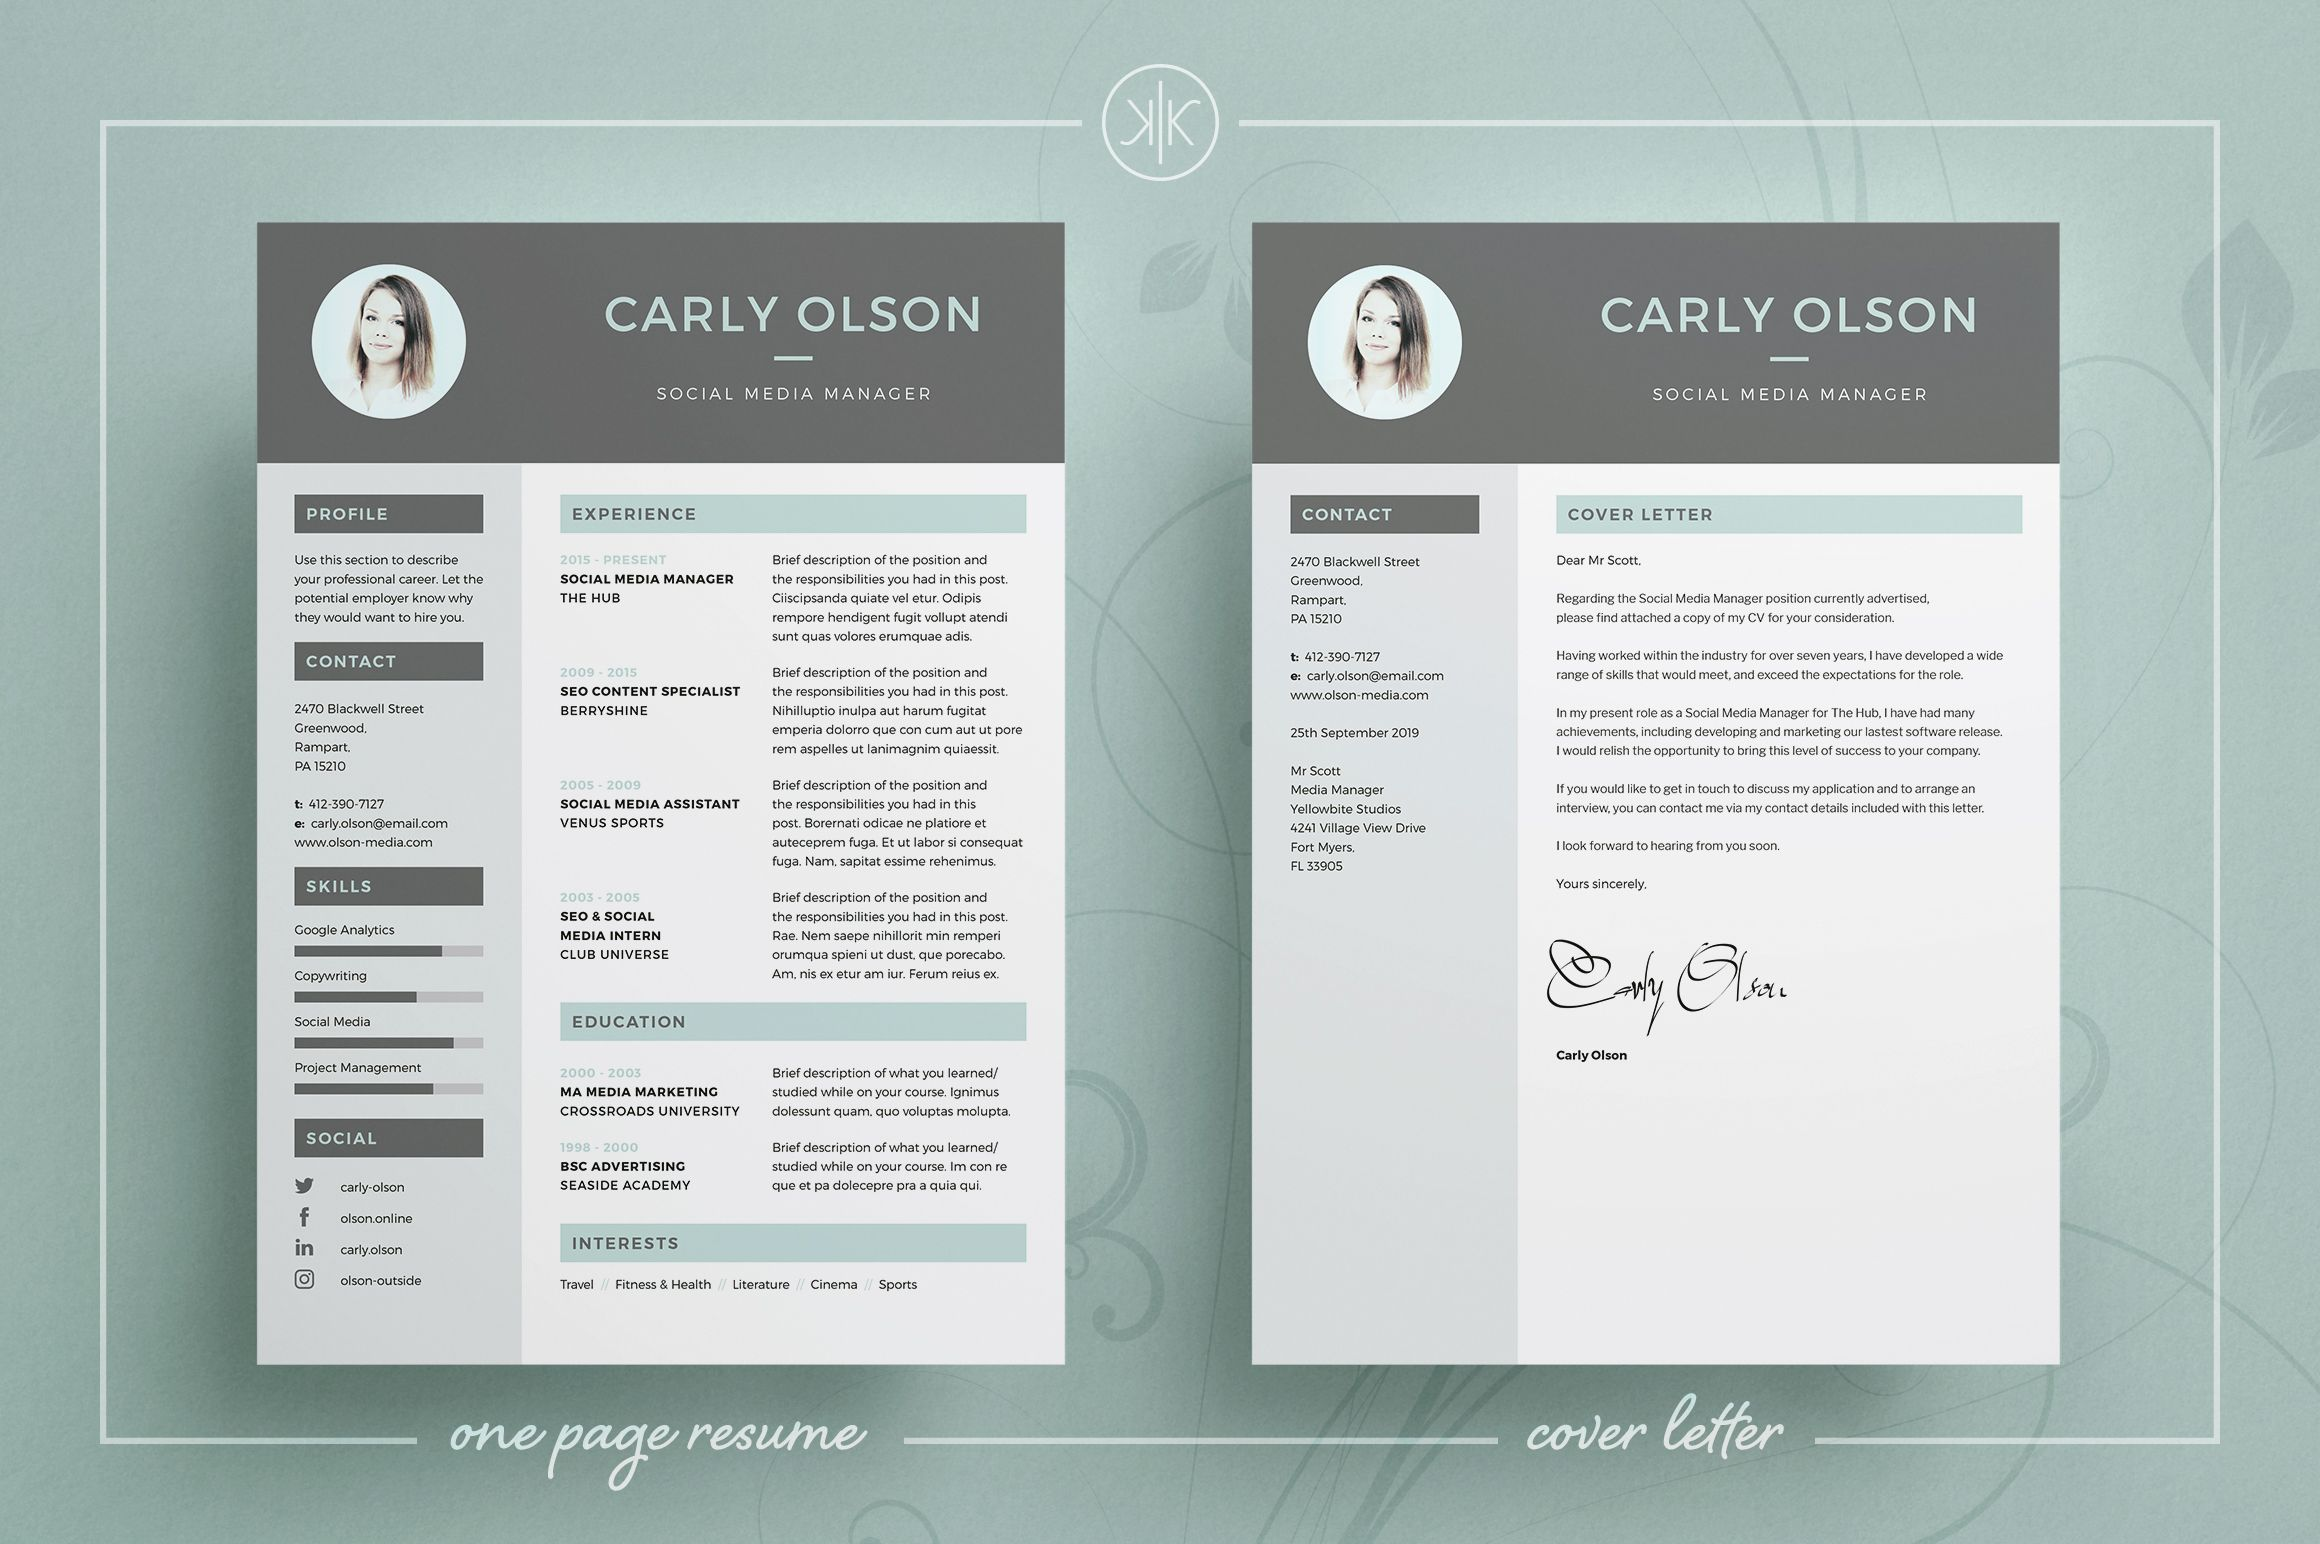 professional resumecv professional resume template cv template resume advice cover